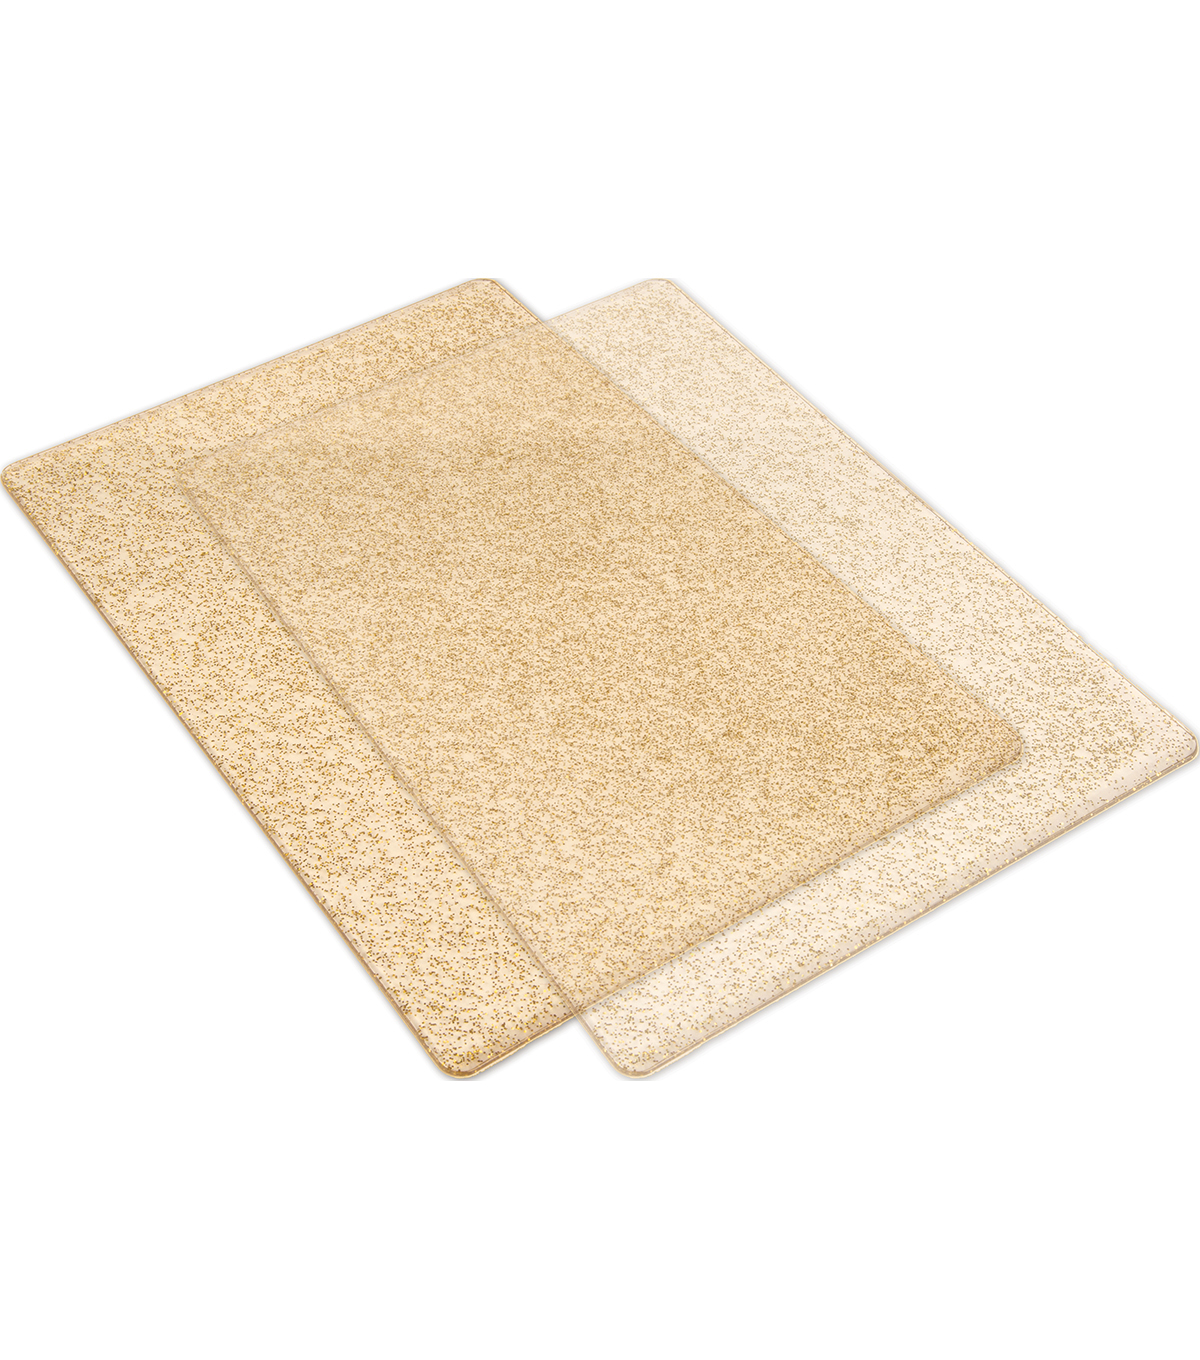 Sizzix™ Big Shot™ Standard Cutting Pads-Clear & Gold Glitter